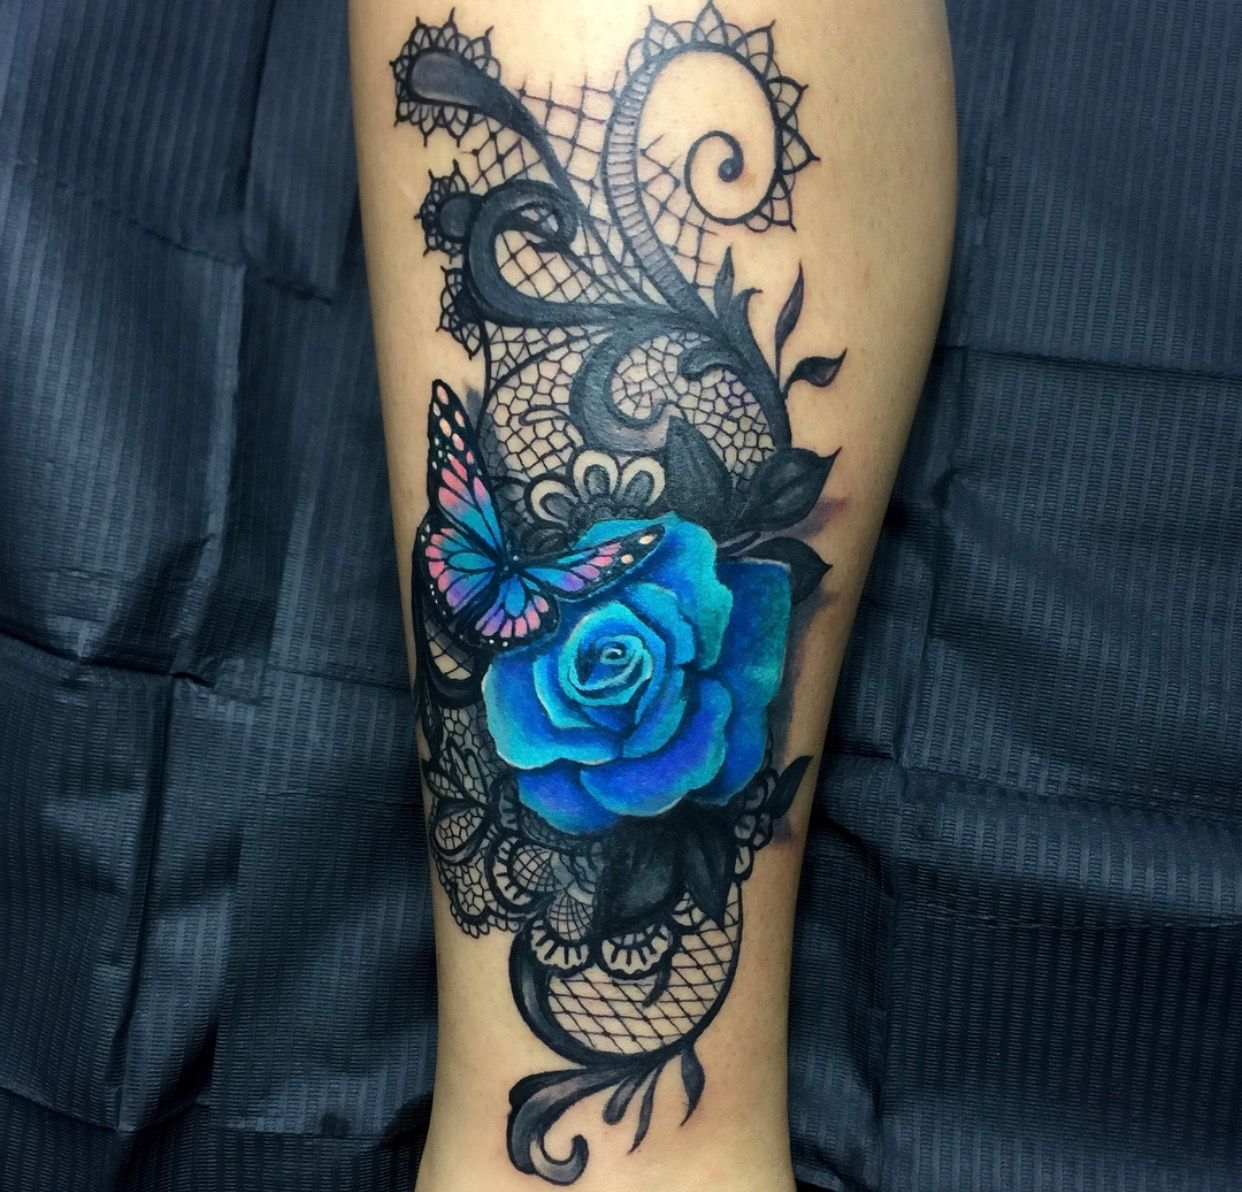 Just A Tad Smaller 1 Favorite Rose Tattoos For Women Lace Flower Tattoos Lace Tattoo Design